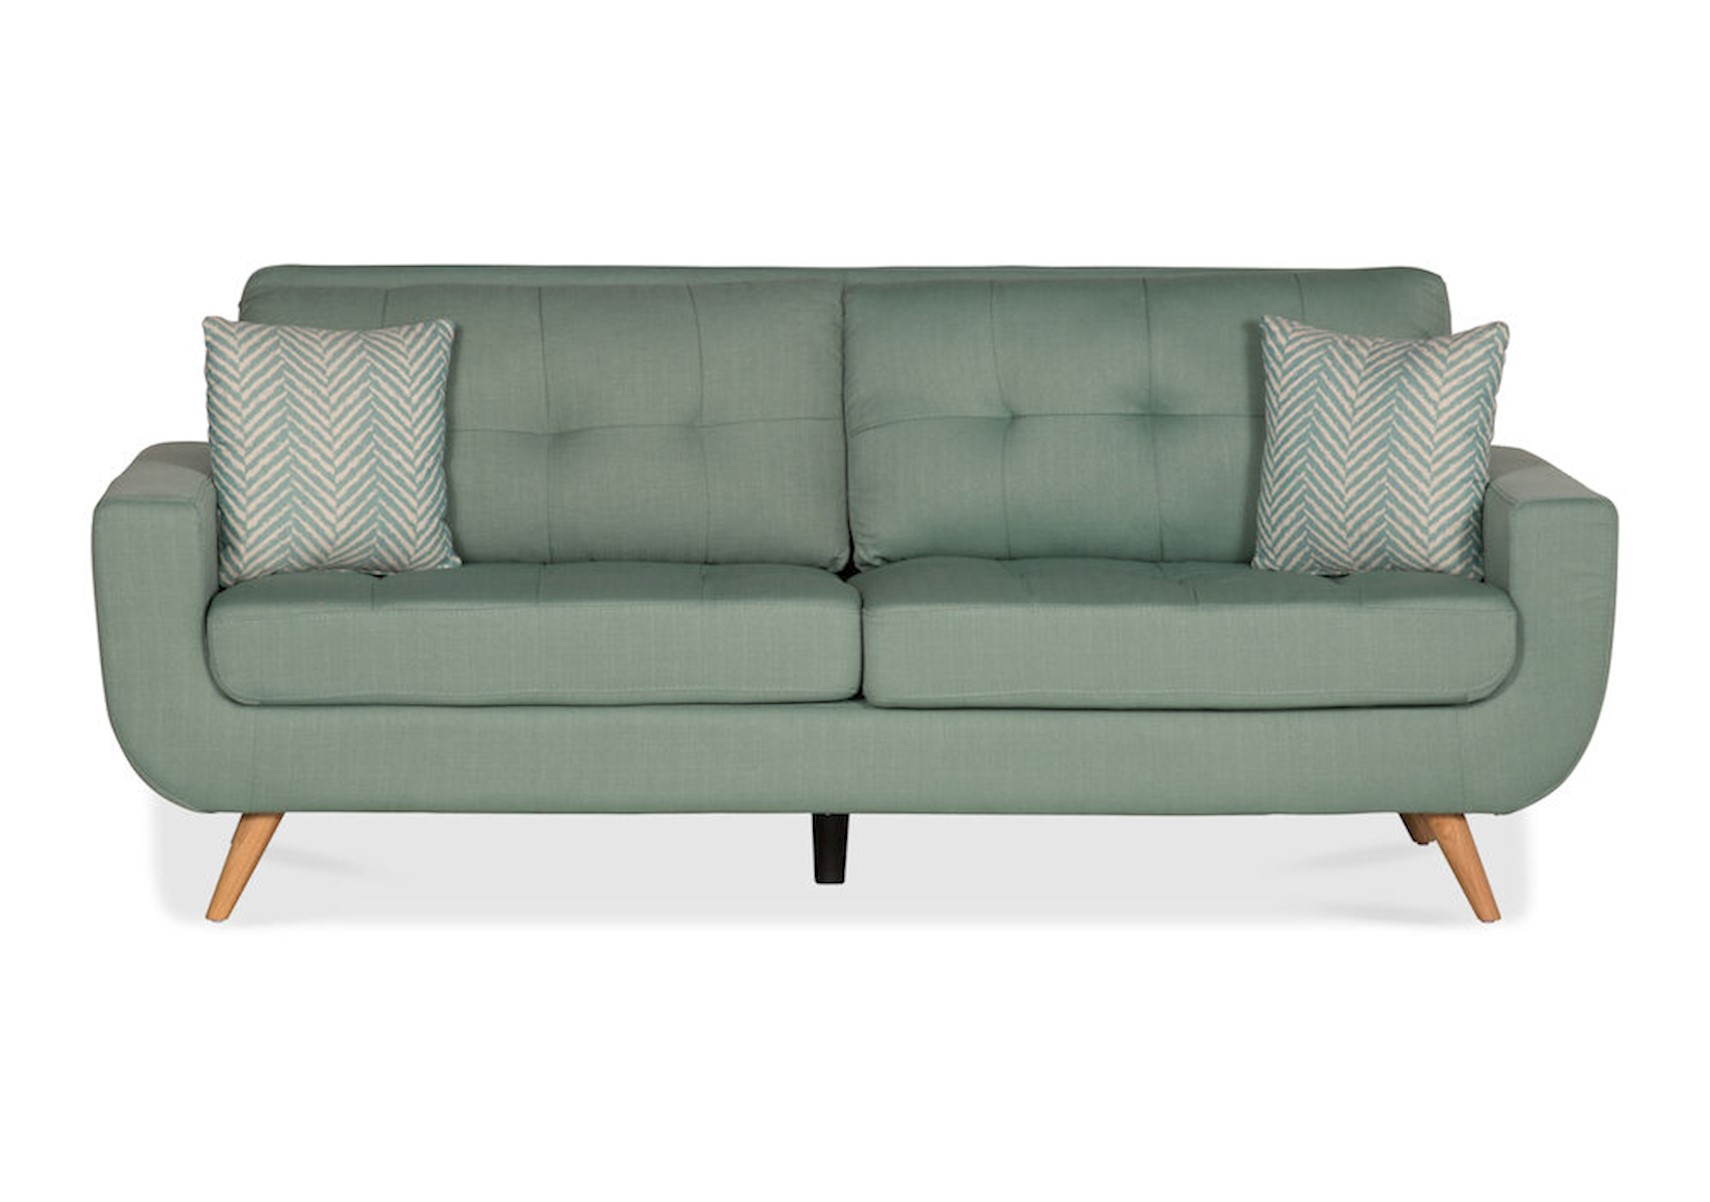 Lacks Darrin Teal Sofa